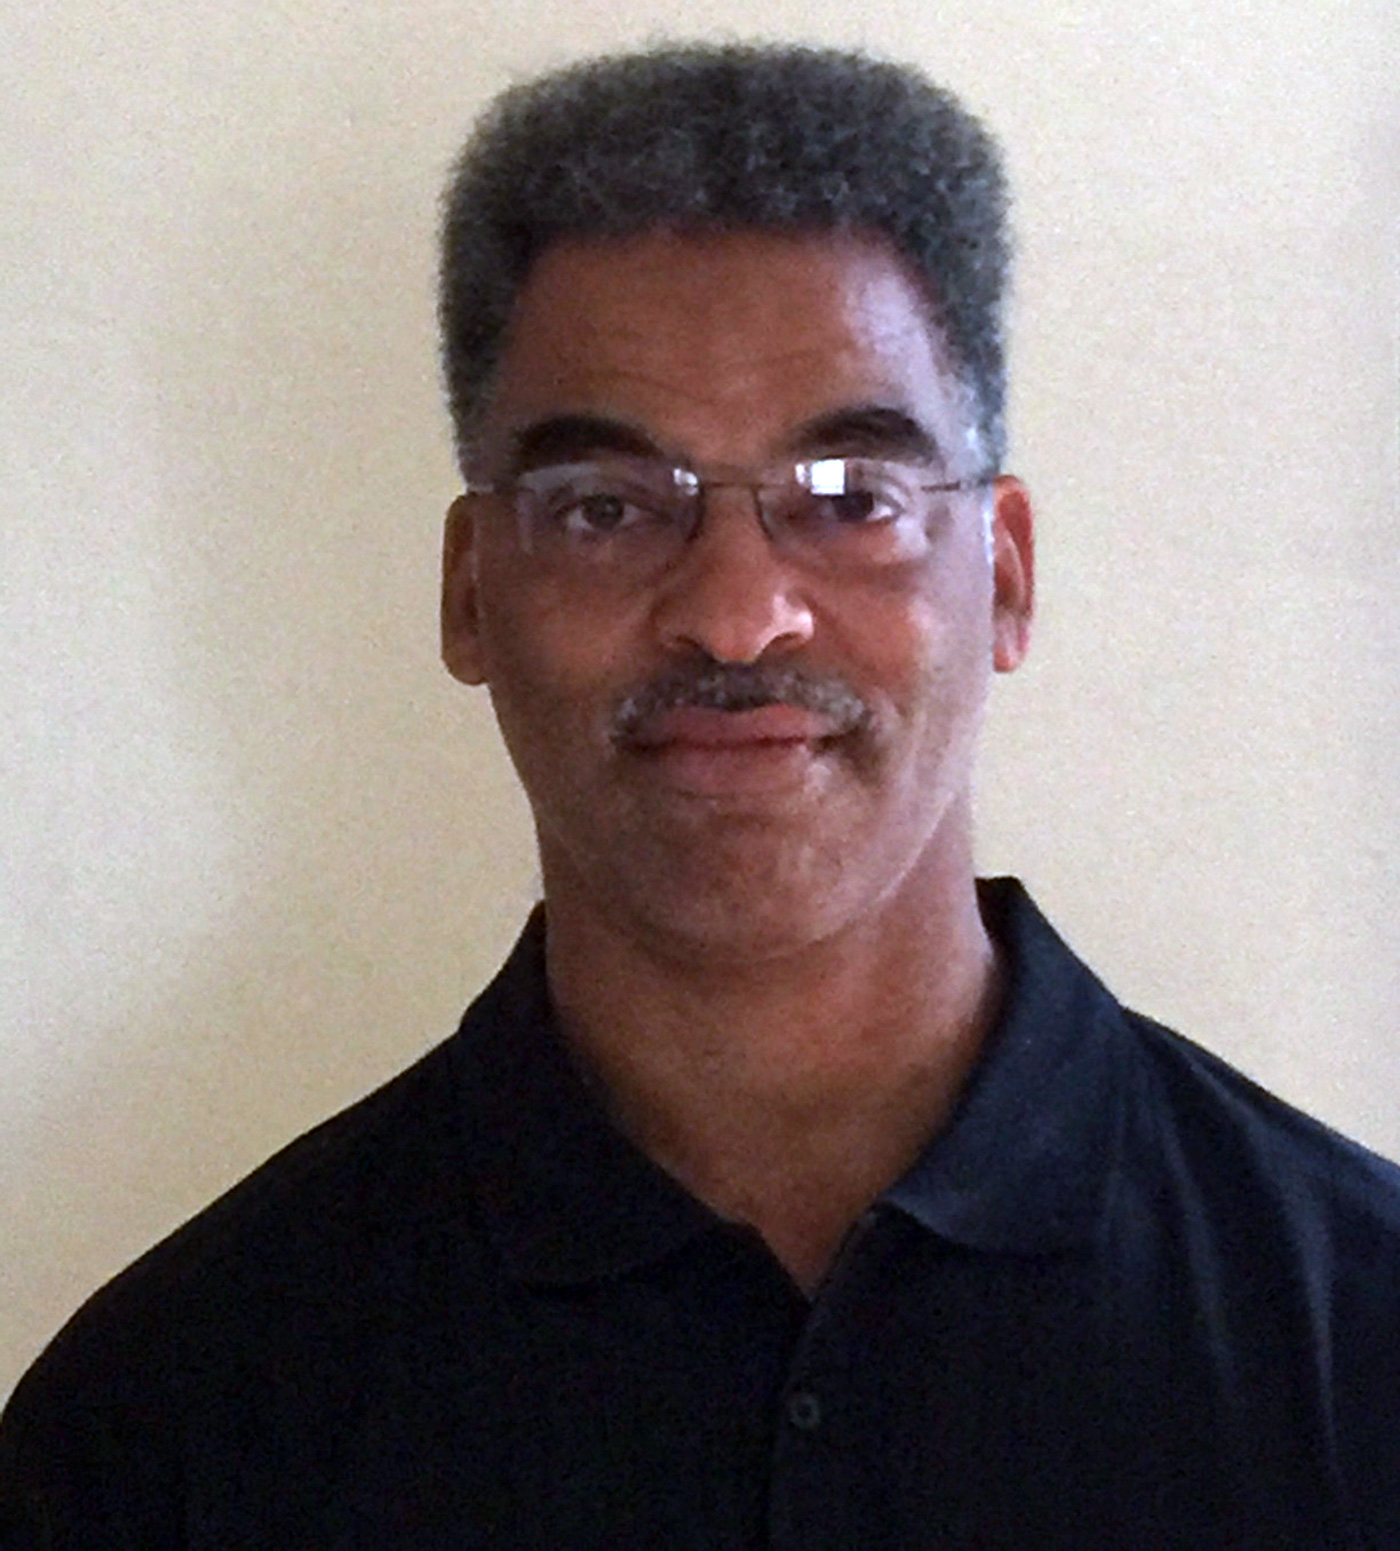 Demetrius A. Lamar is a Adjunct Faculty member in the department of Sociology at UMass Lowell.